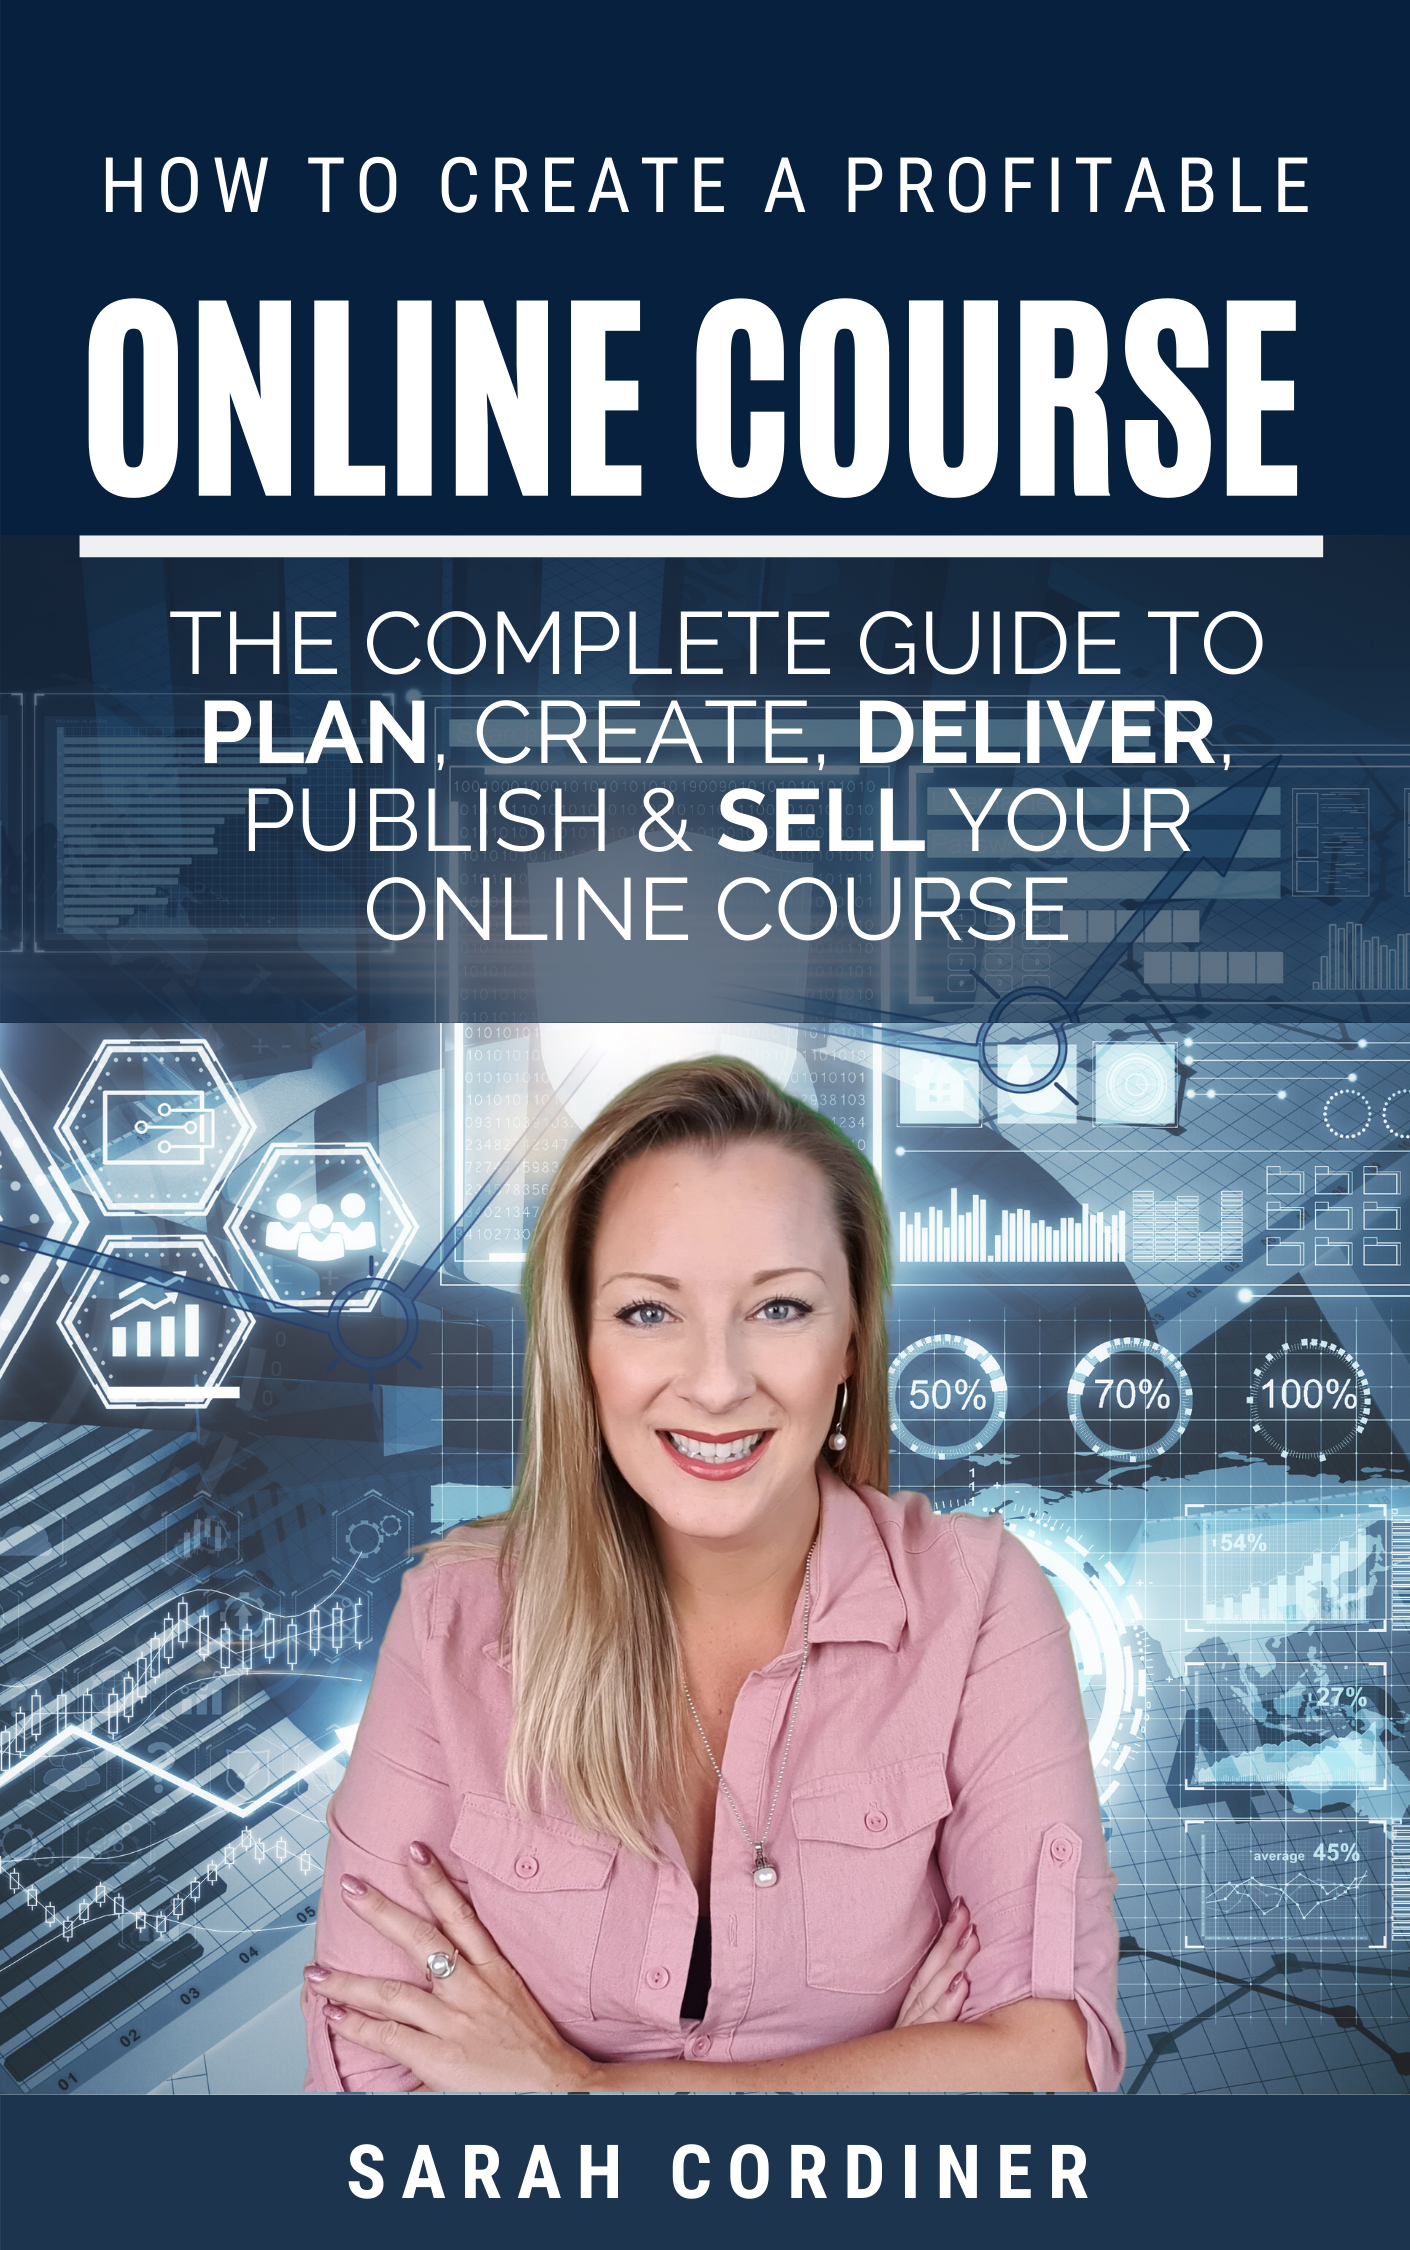 how to create an online course sarah cordiner